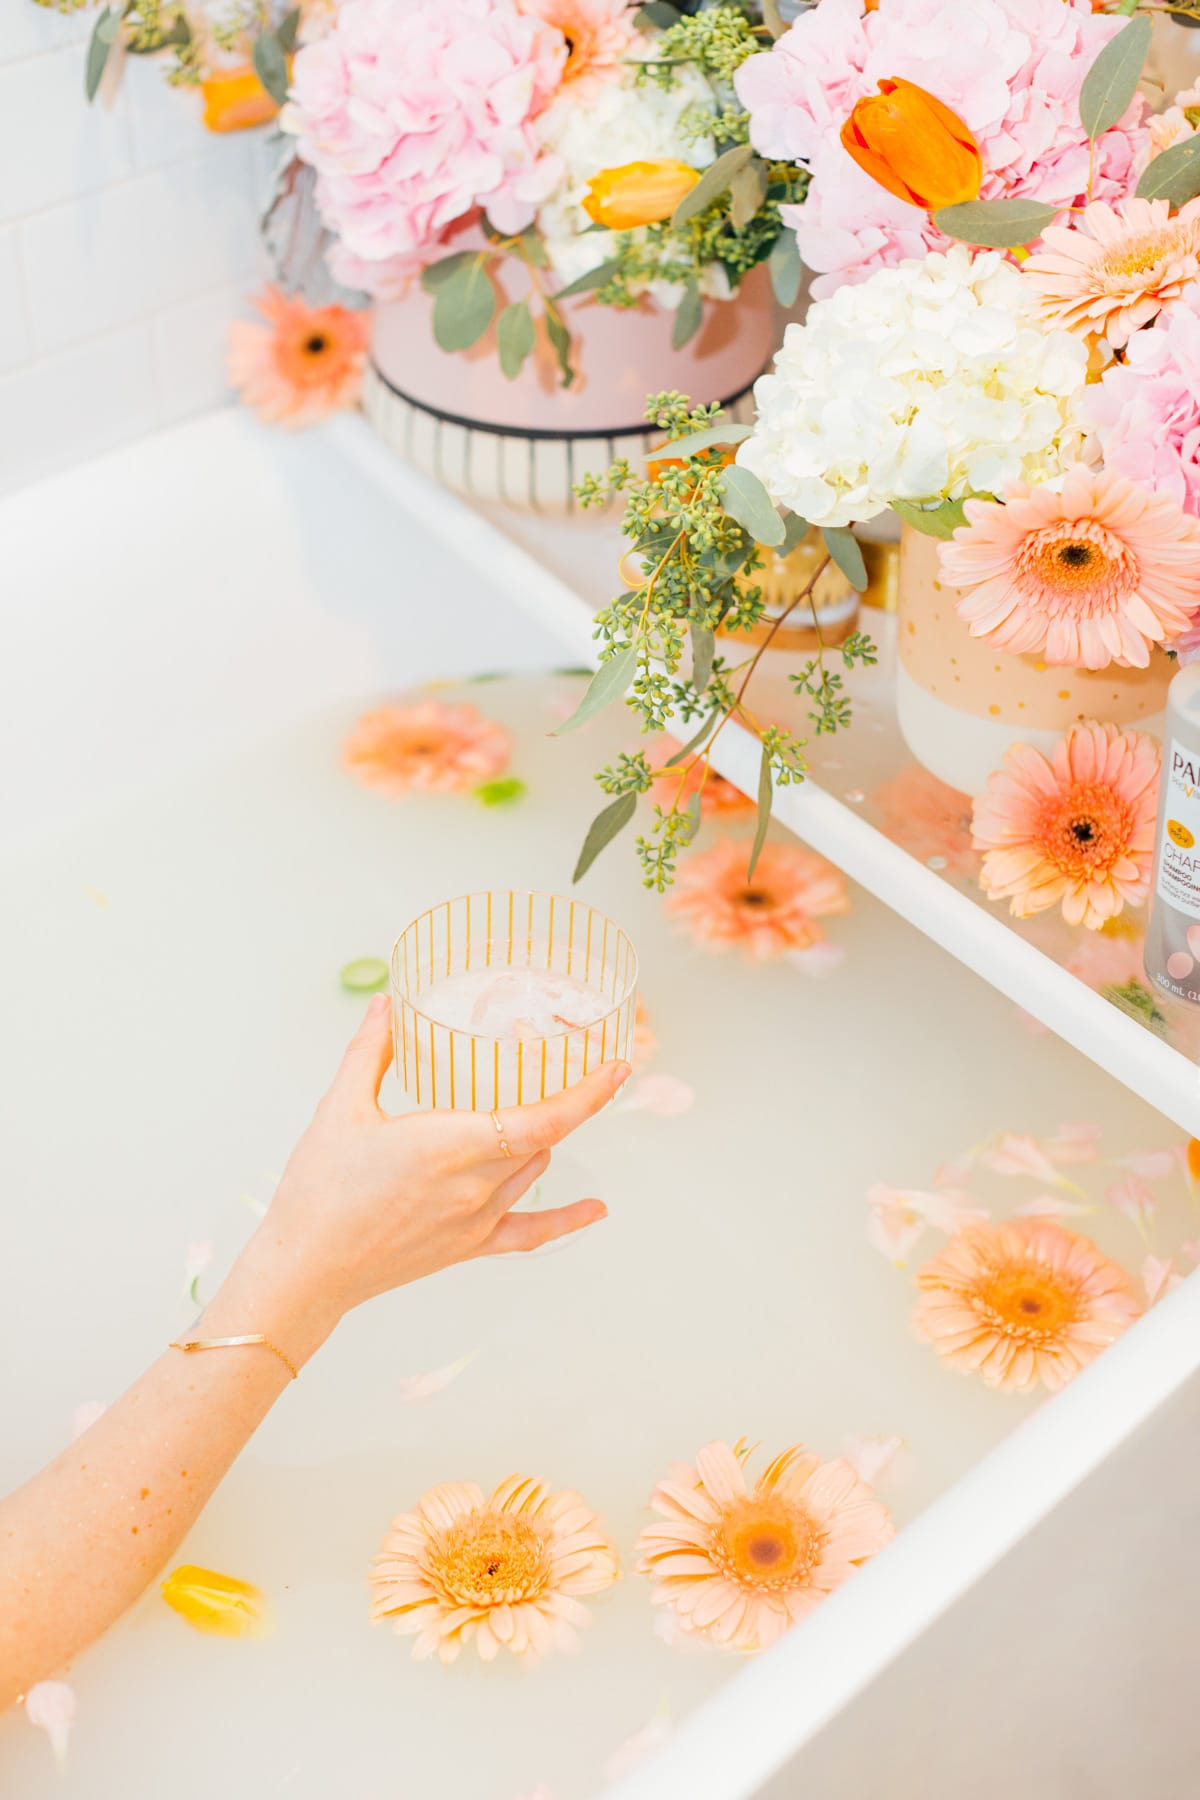 a glass of wine and a flower milk bath - My Easy Self-Care Tips for Feeling Confident in Yourself (Especially After Baby) - by top Houston lifestyle blogger Ashley Rose of Sugar and Cloth #beauty #tips #selfcare #hair #hairstyles #florals #flowers #showers